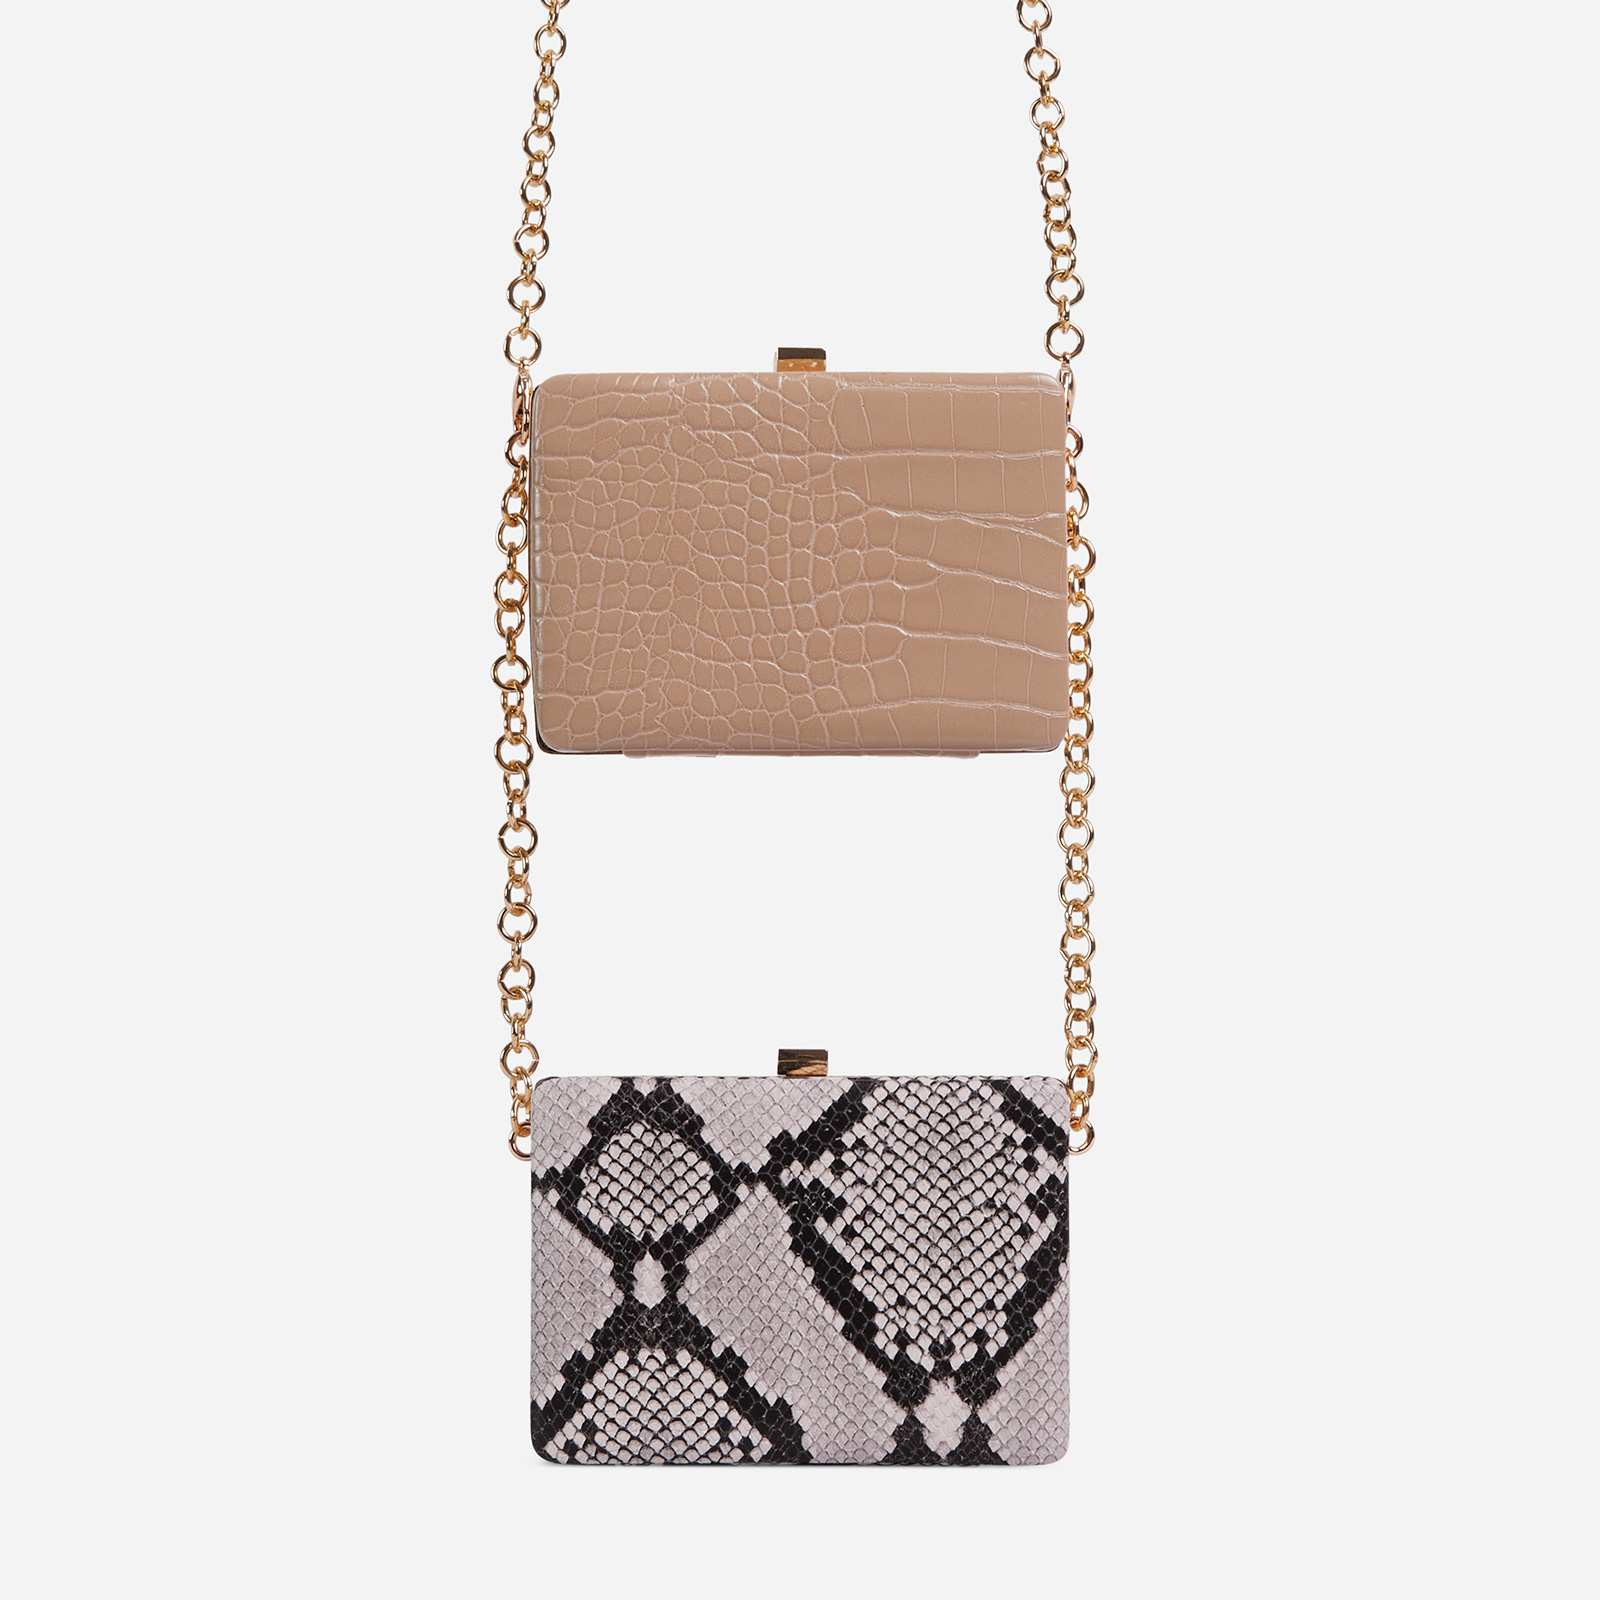 Alva Double Cross Body Clutch Bag In Nude Snake Print And Nude Faux Leather